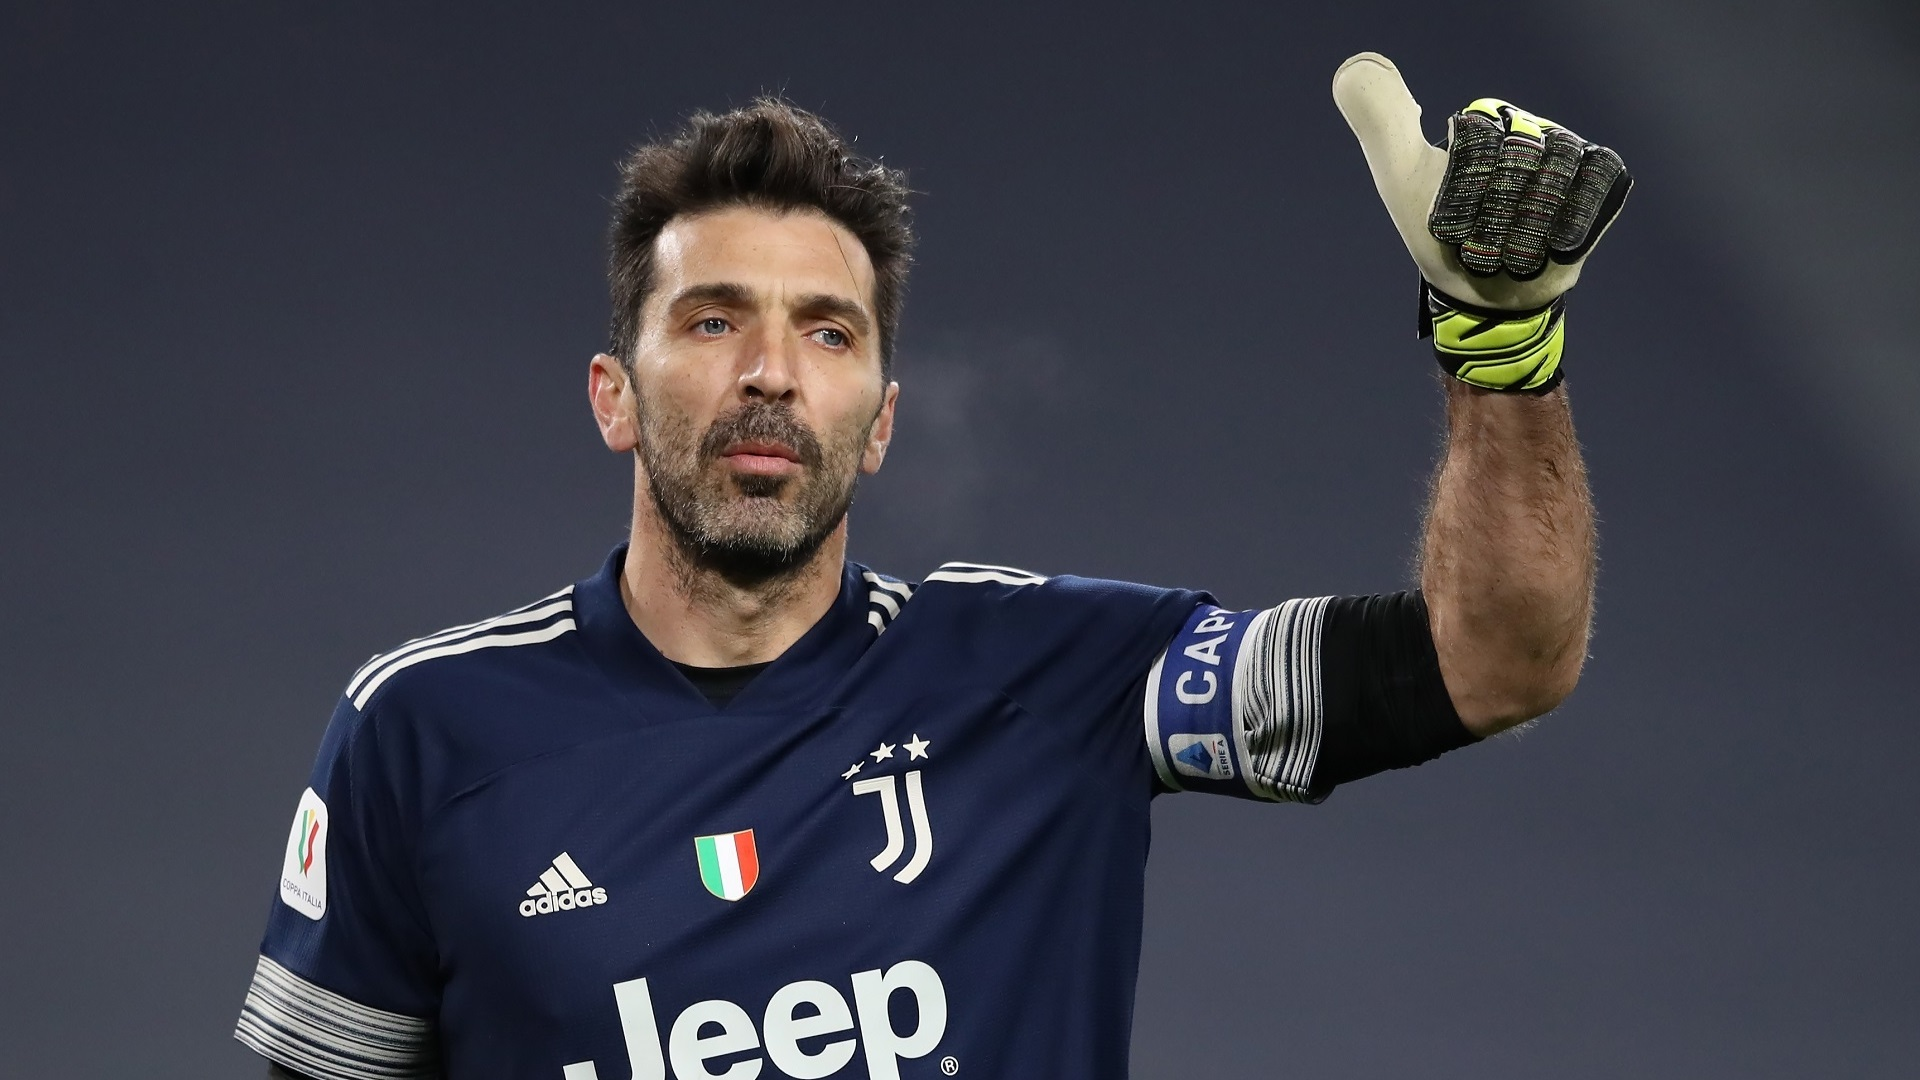 Juventus, message from Andrea Pirlo on the future of Gigi Buffon ...